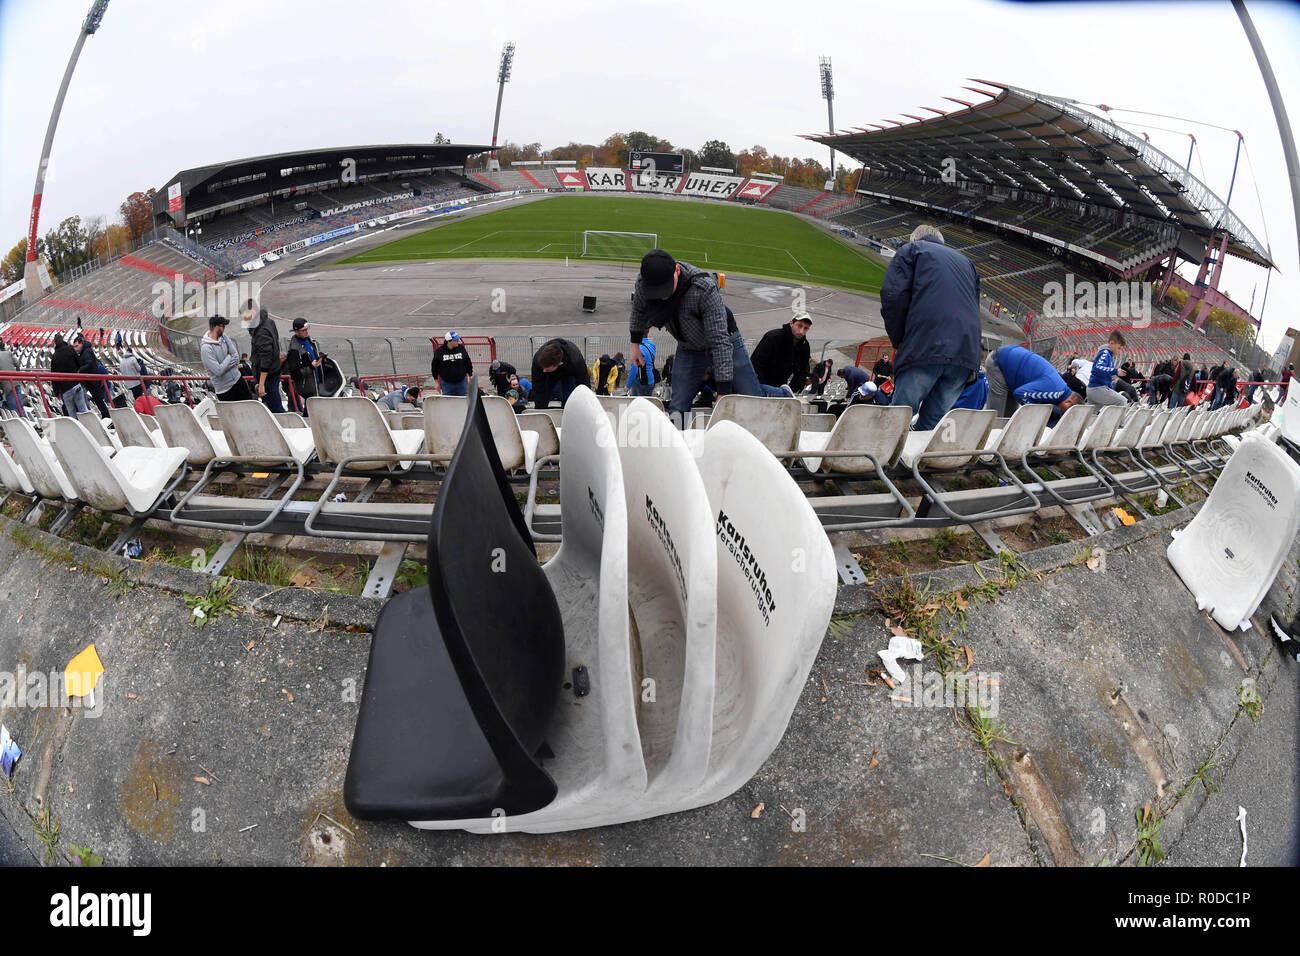 Karlsruhe, Germany. 04th Nov, 2018. Fans of the third-league soccer team Karlsruher SC dismantle seat shells in the Wildparkstadion Karlsruhe. Before the demolition work on blocks A1 to A4 begins in the stadium on 05.11.2018, KSC fans can secure up to ten seat shells for five euros each. According to the association, the proceeds from the fan campaign will be donated to the youngsters of Karlsruher SC. Credit: Uli Deck/dpa/Alamy Live News - Stock Image